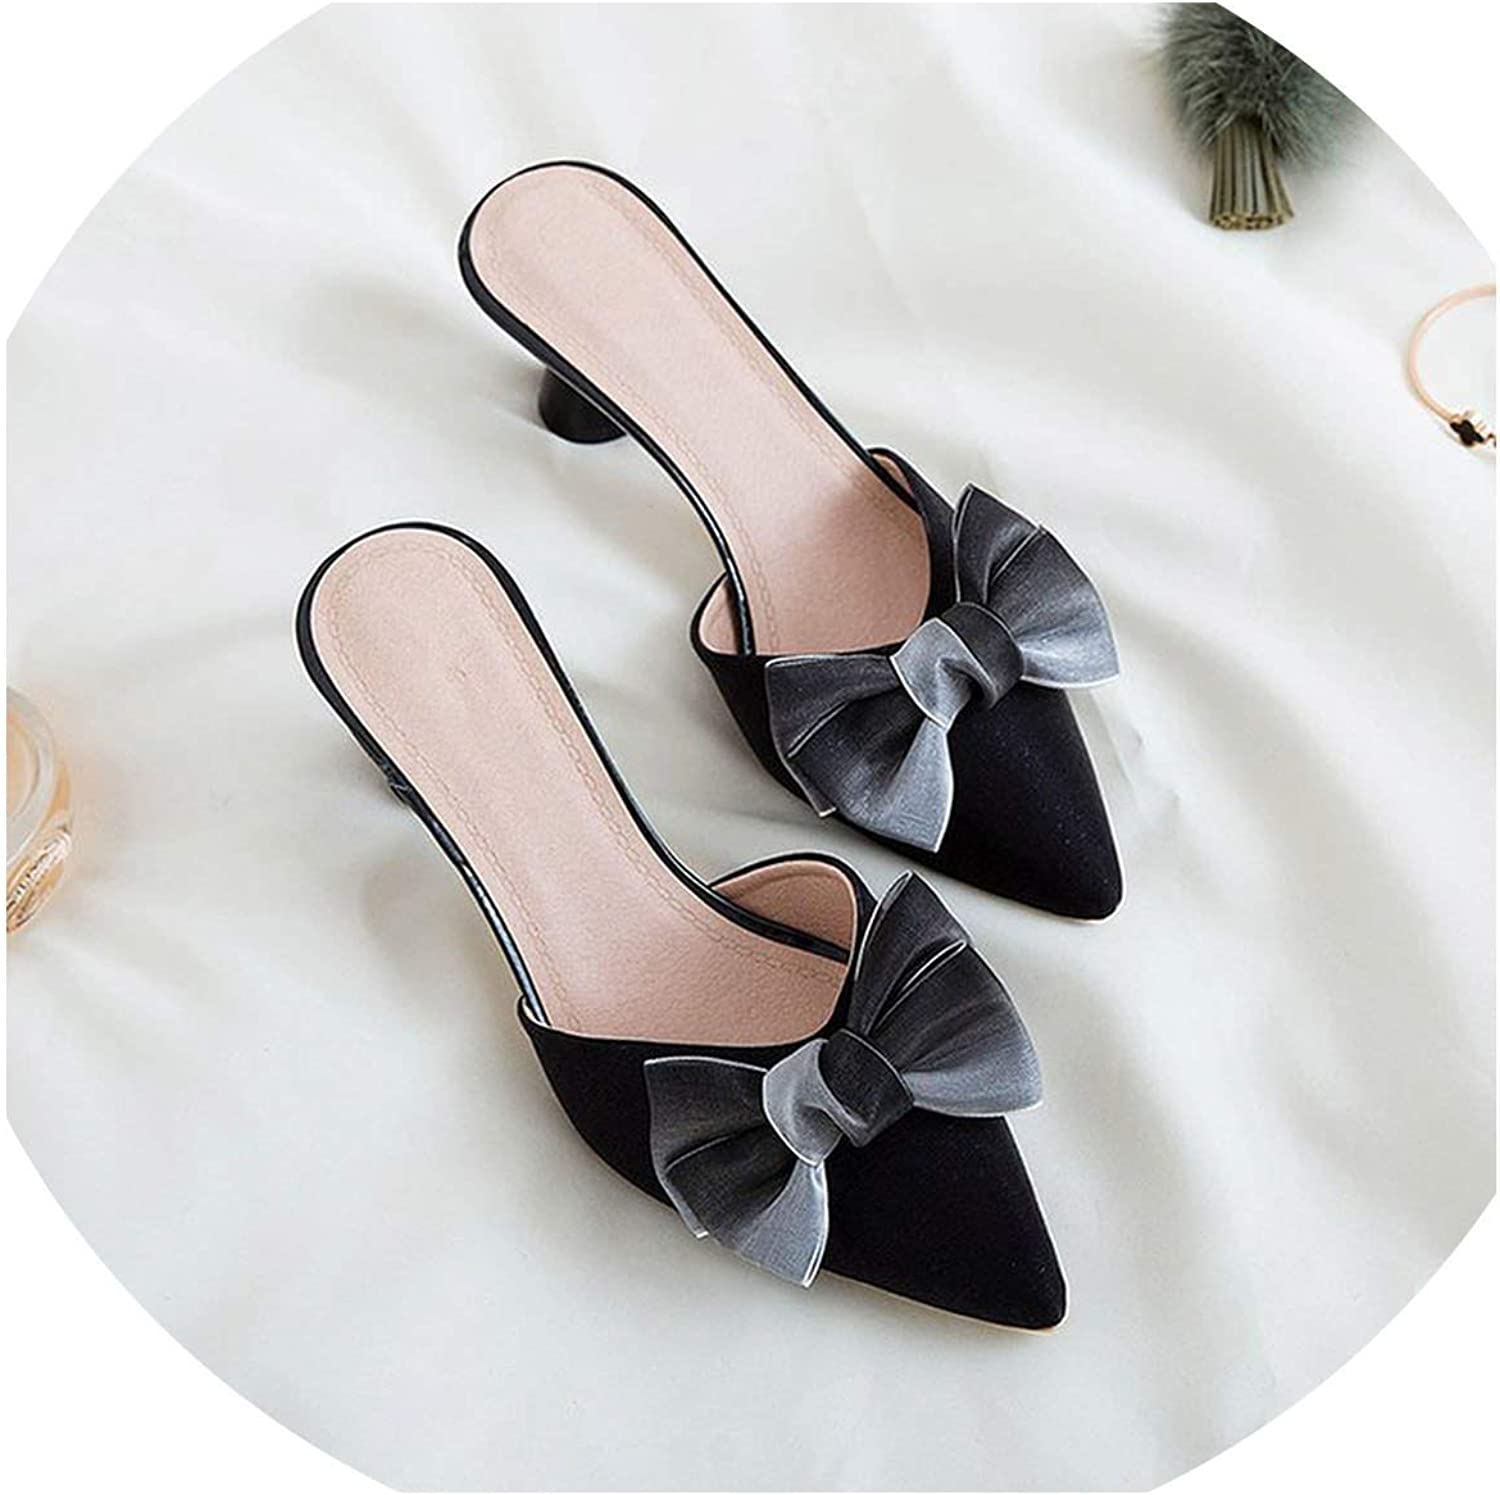 Betterluse Summer Slippers High Heel Velvet Bow Pointed Toe Two-Piece Strange Pearl Heel Stiletto Party shoes